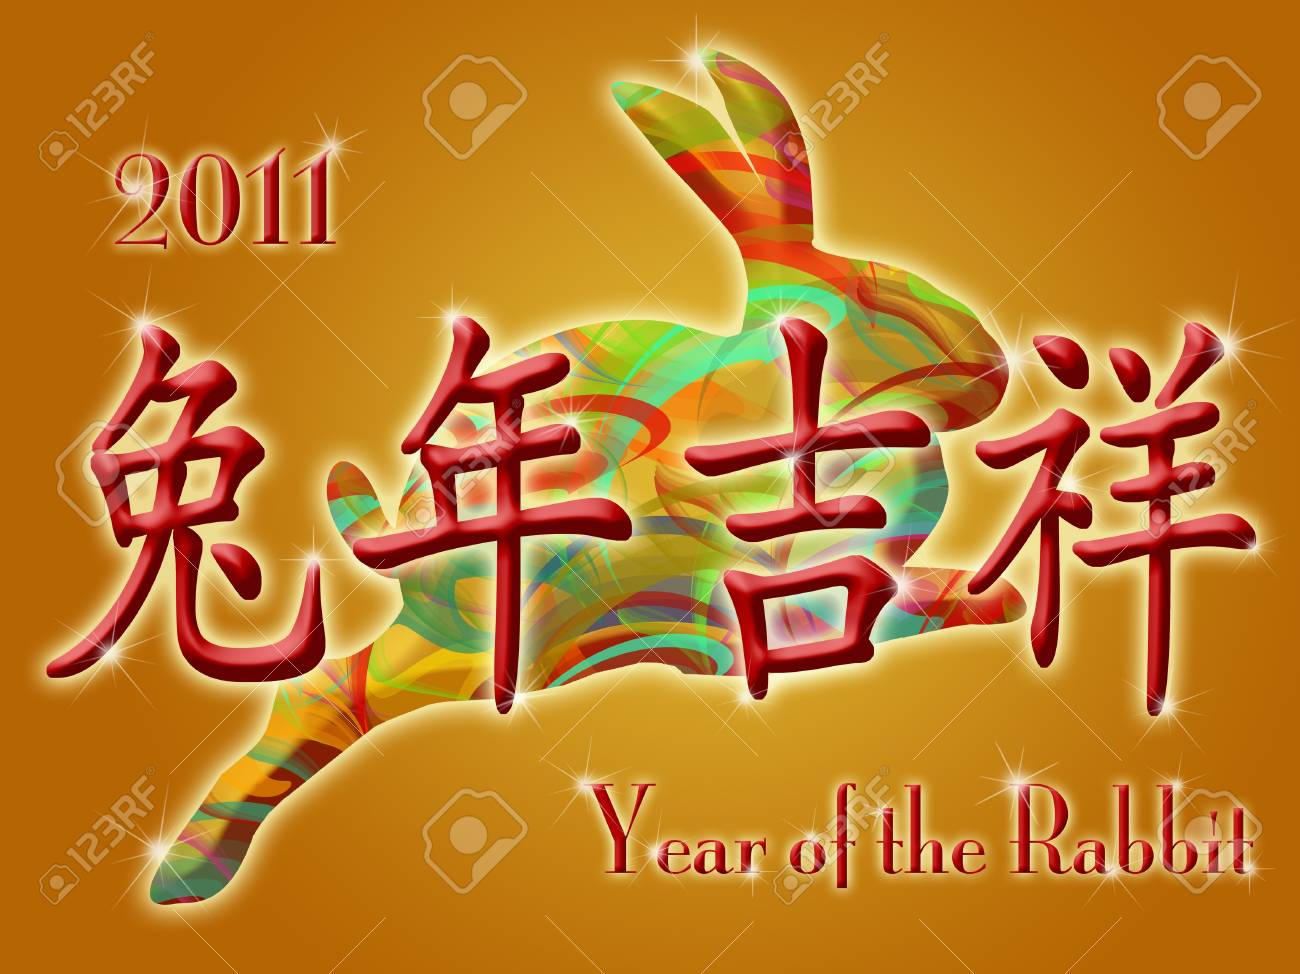 Happy Chinese New Year 2011 With Colorful Rabbit And Wishes Symbol